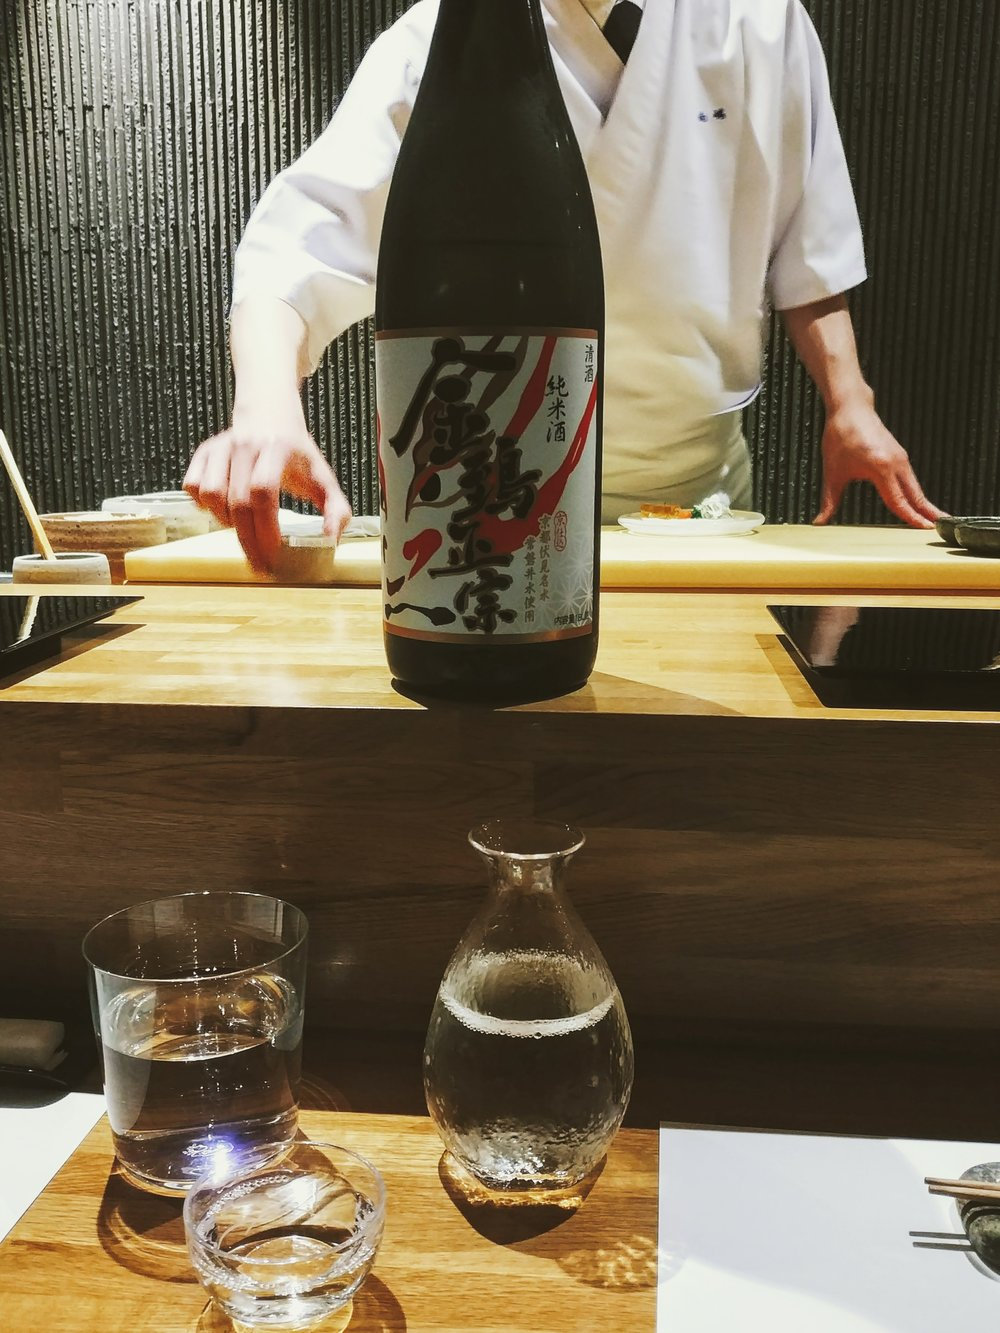 Sake to start with - Either it was from Kyoto or Miyagi...not sure...but went with their recommendation anyway